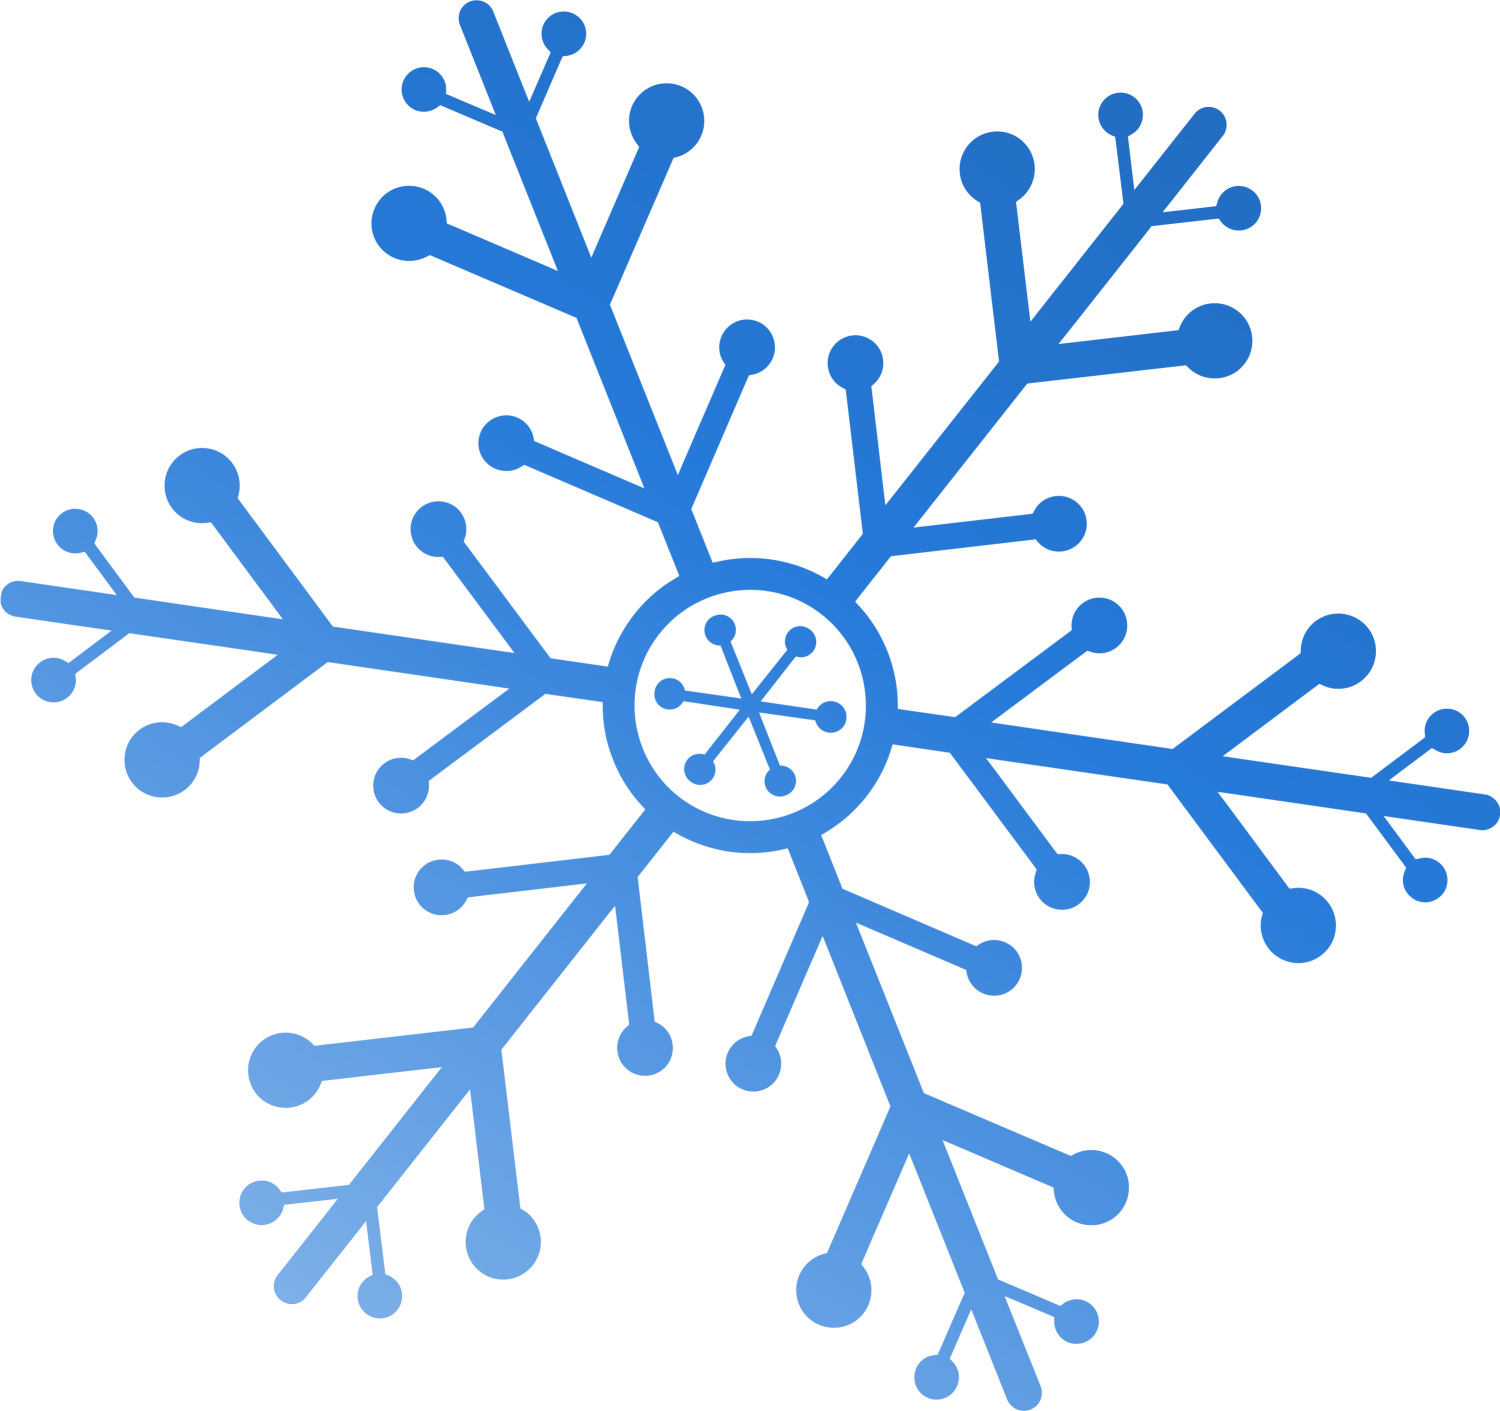 Clipart simple snowflake png royalty free stock Snowflake Watercolor painting Clip art - Beautiful blue snowflake ... png royalty free stock